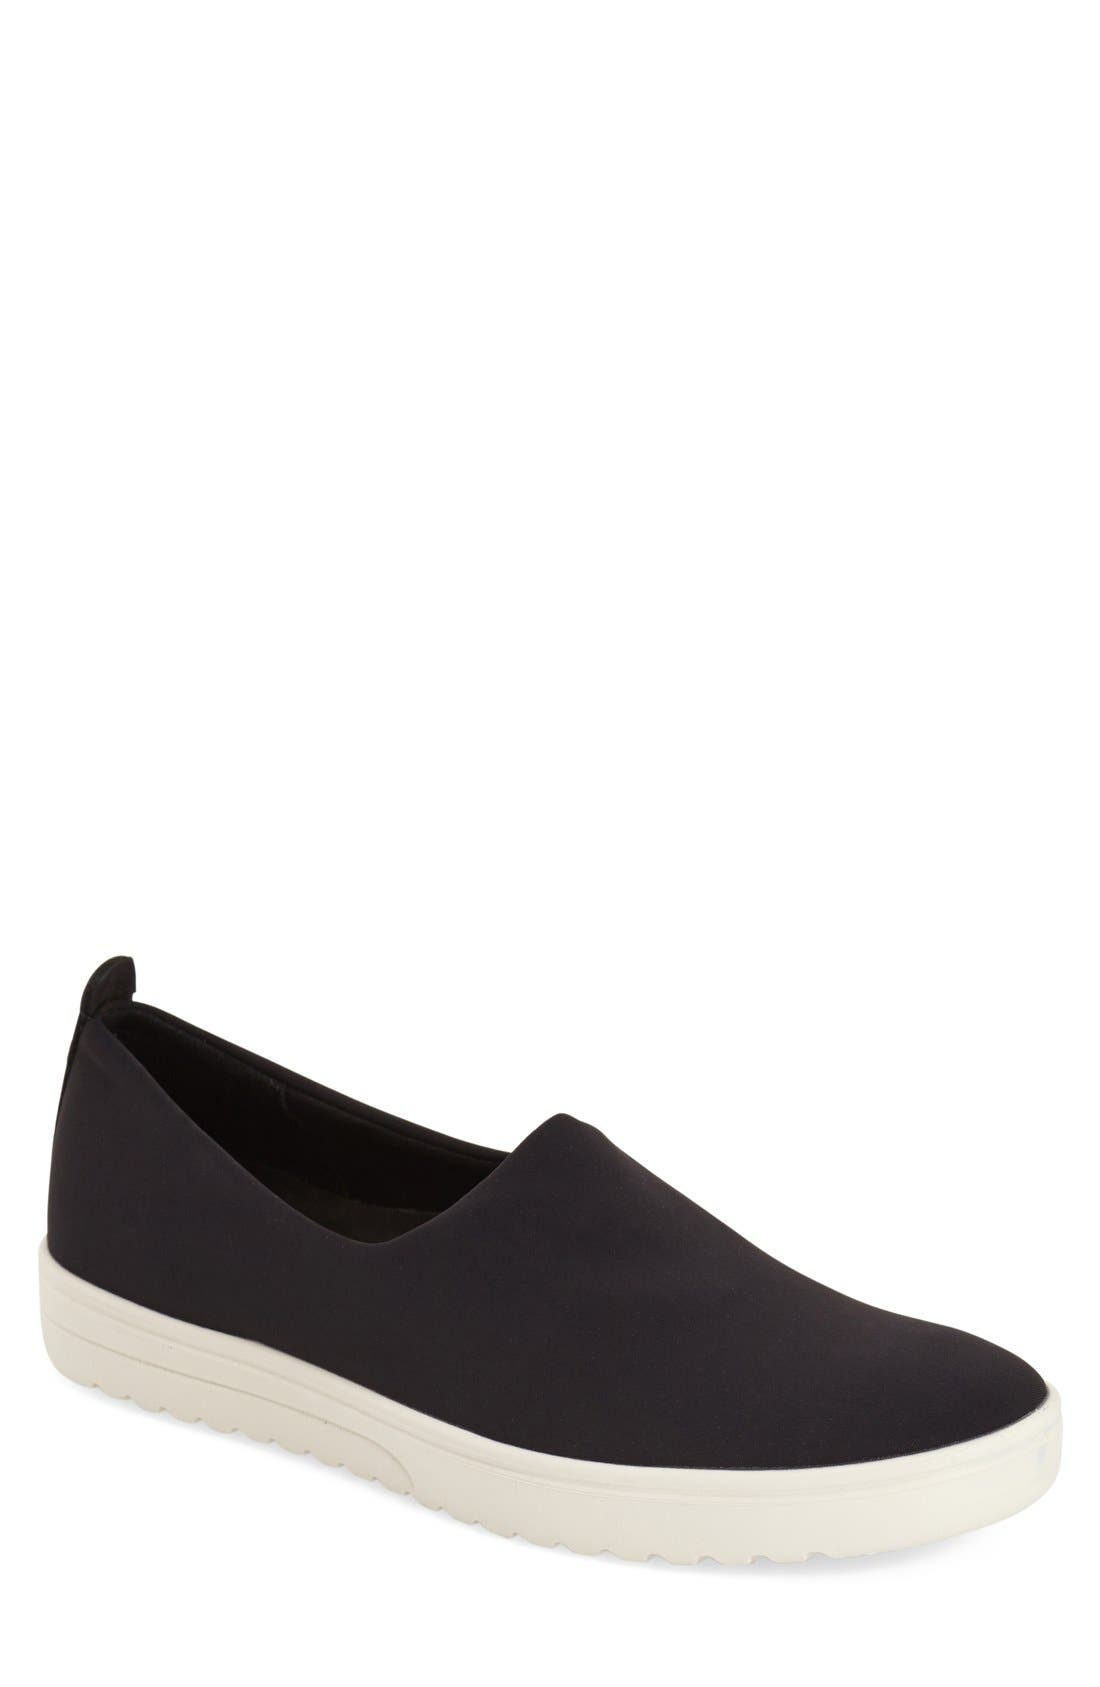 Alternate Image 1 Selected - ECCO 'Fara' Slip-On Sneaker (Women)